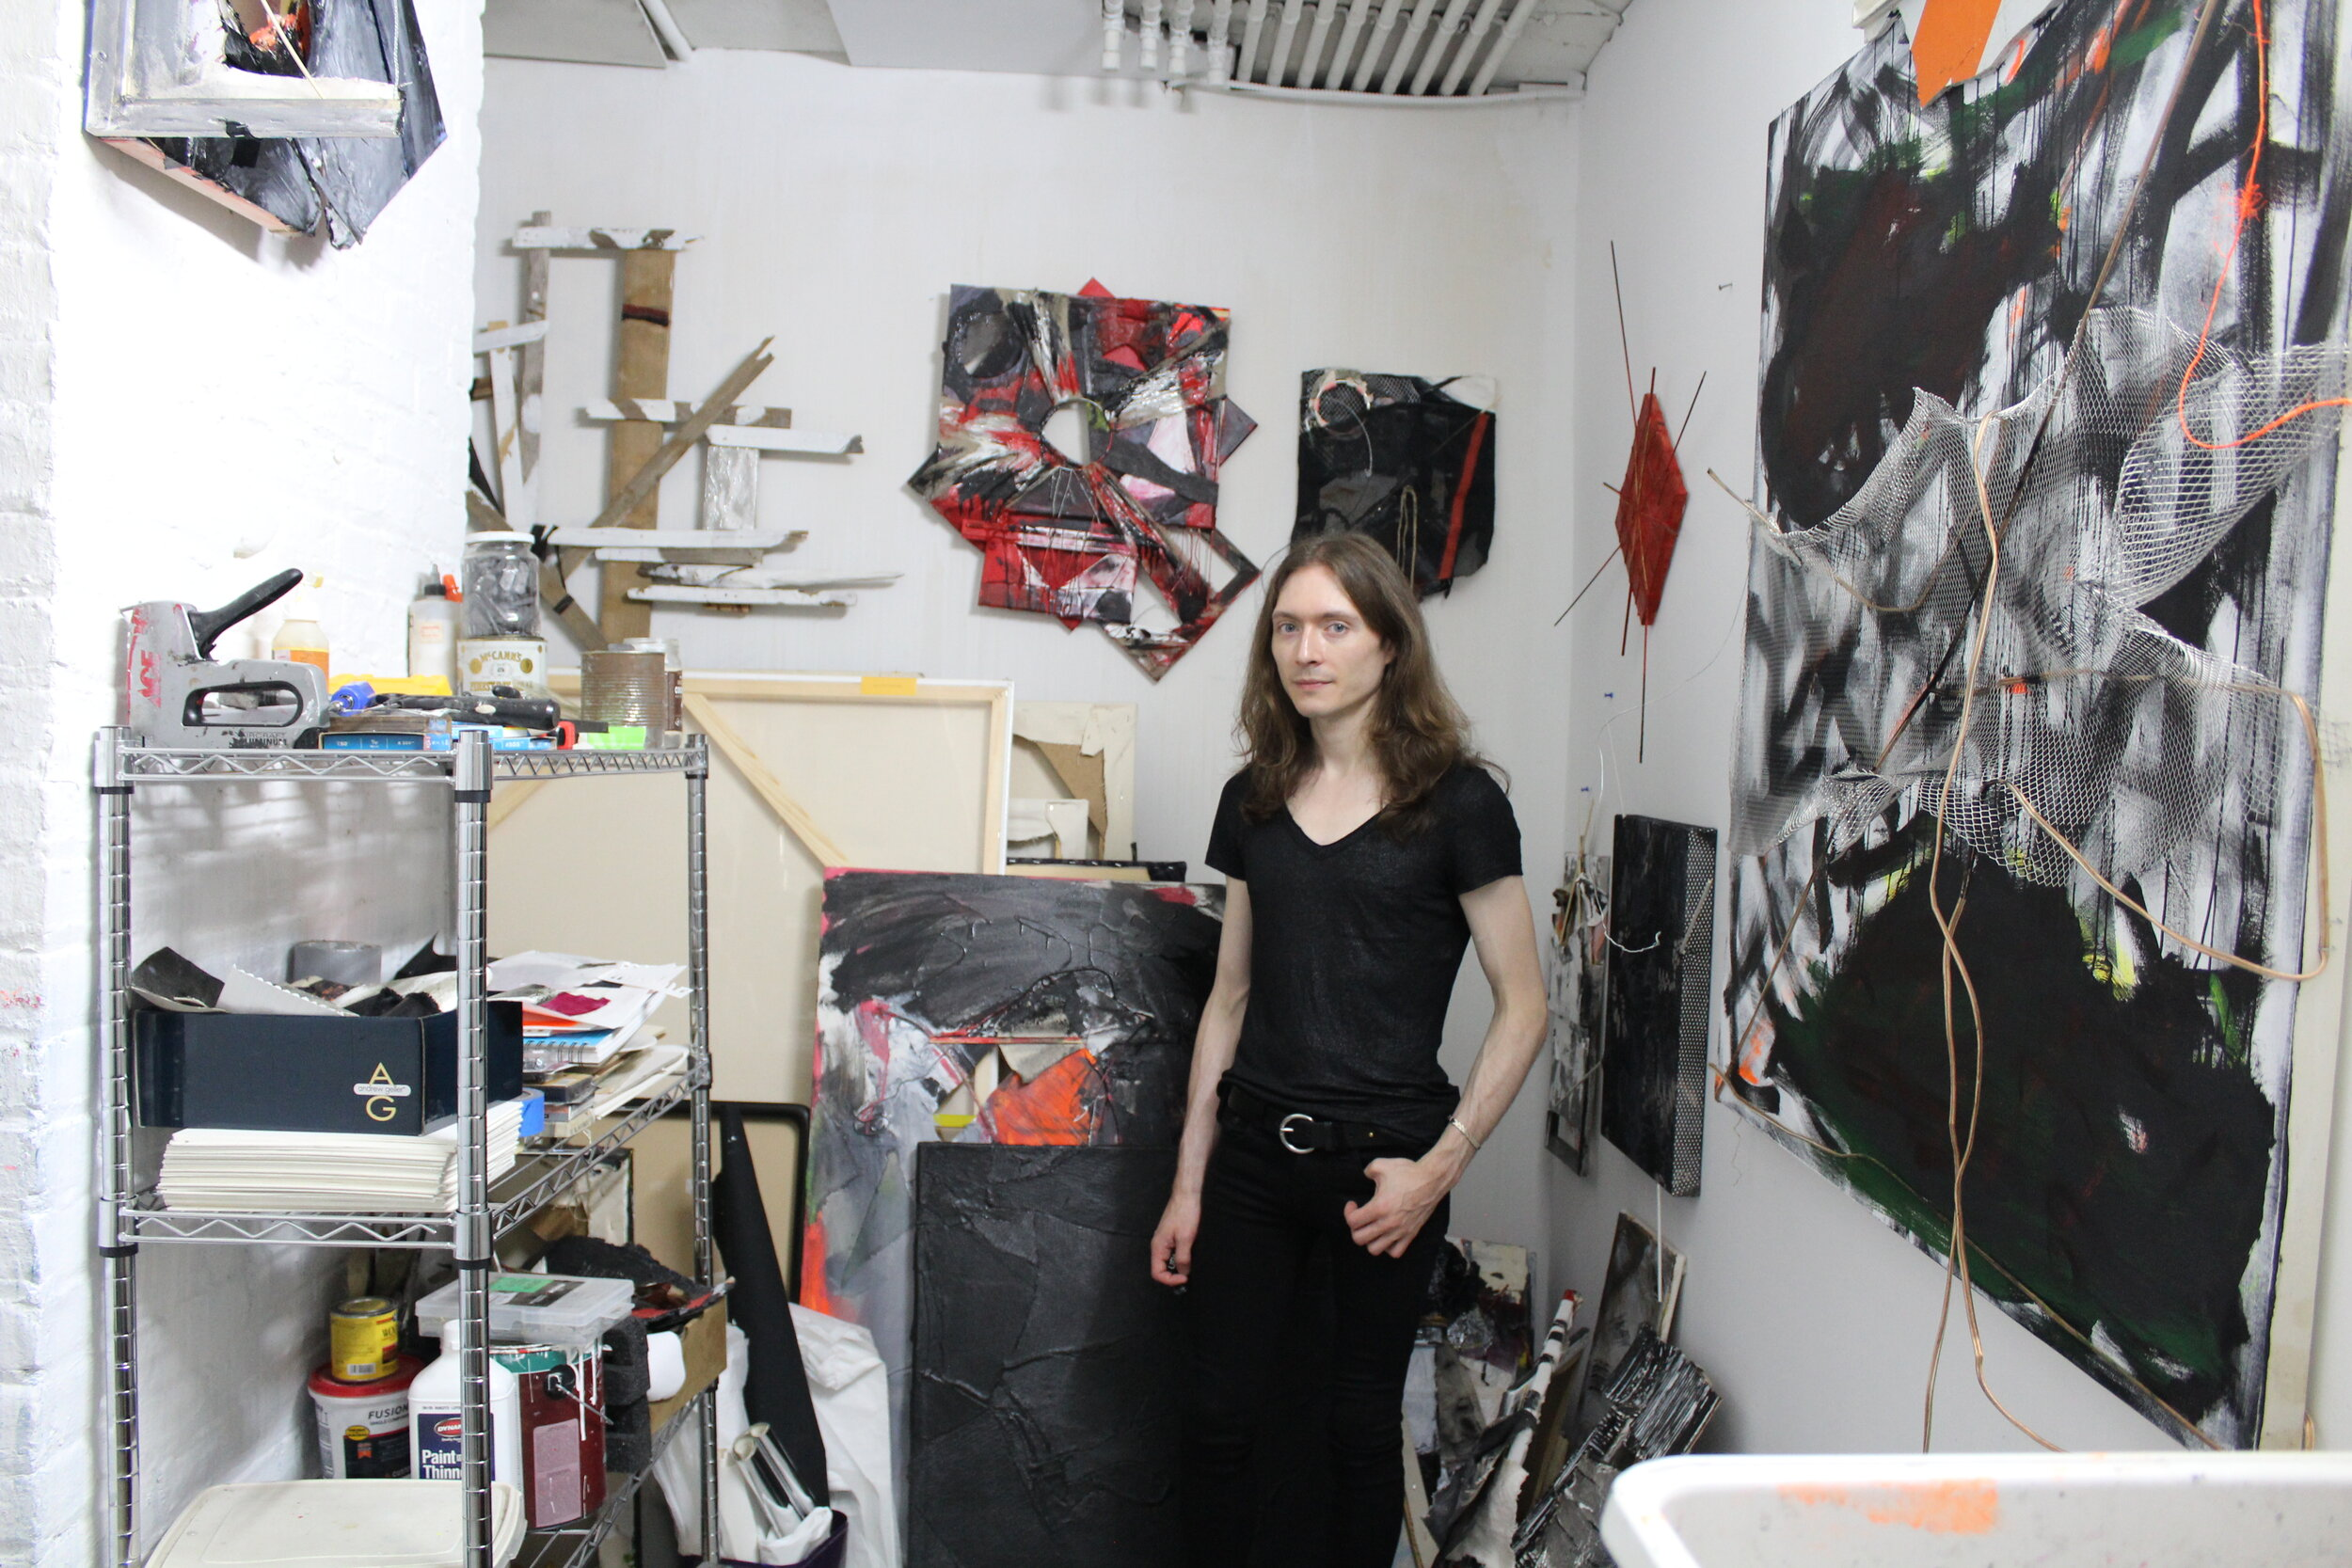 Alex Markwith in his studio